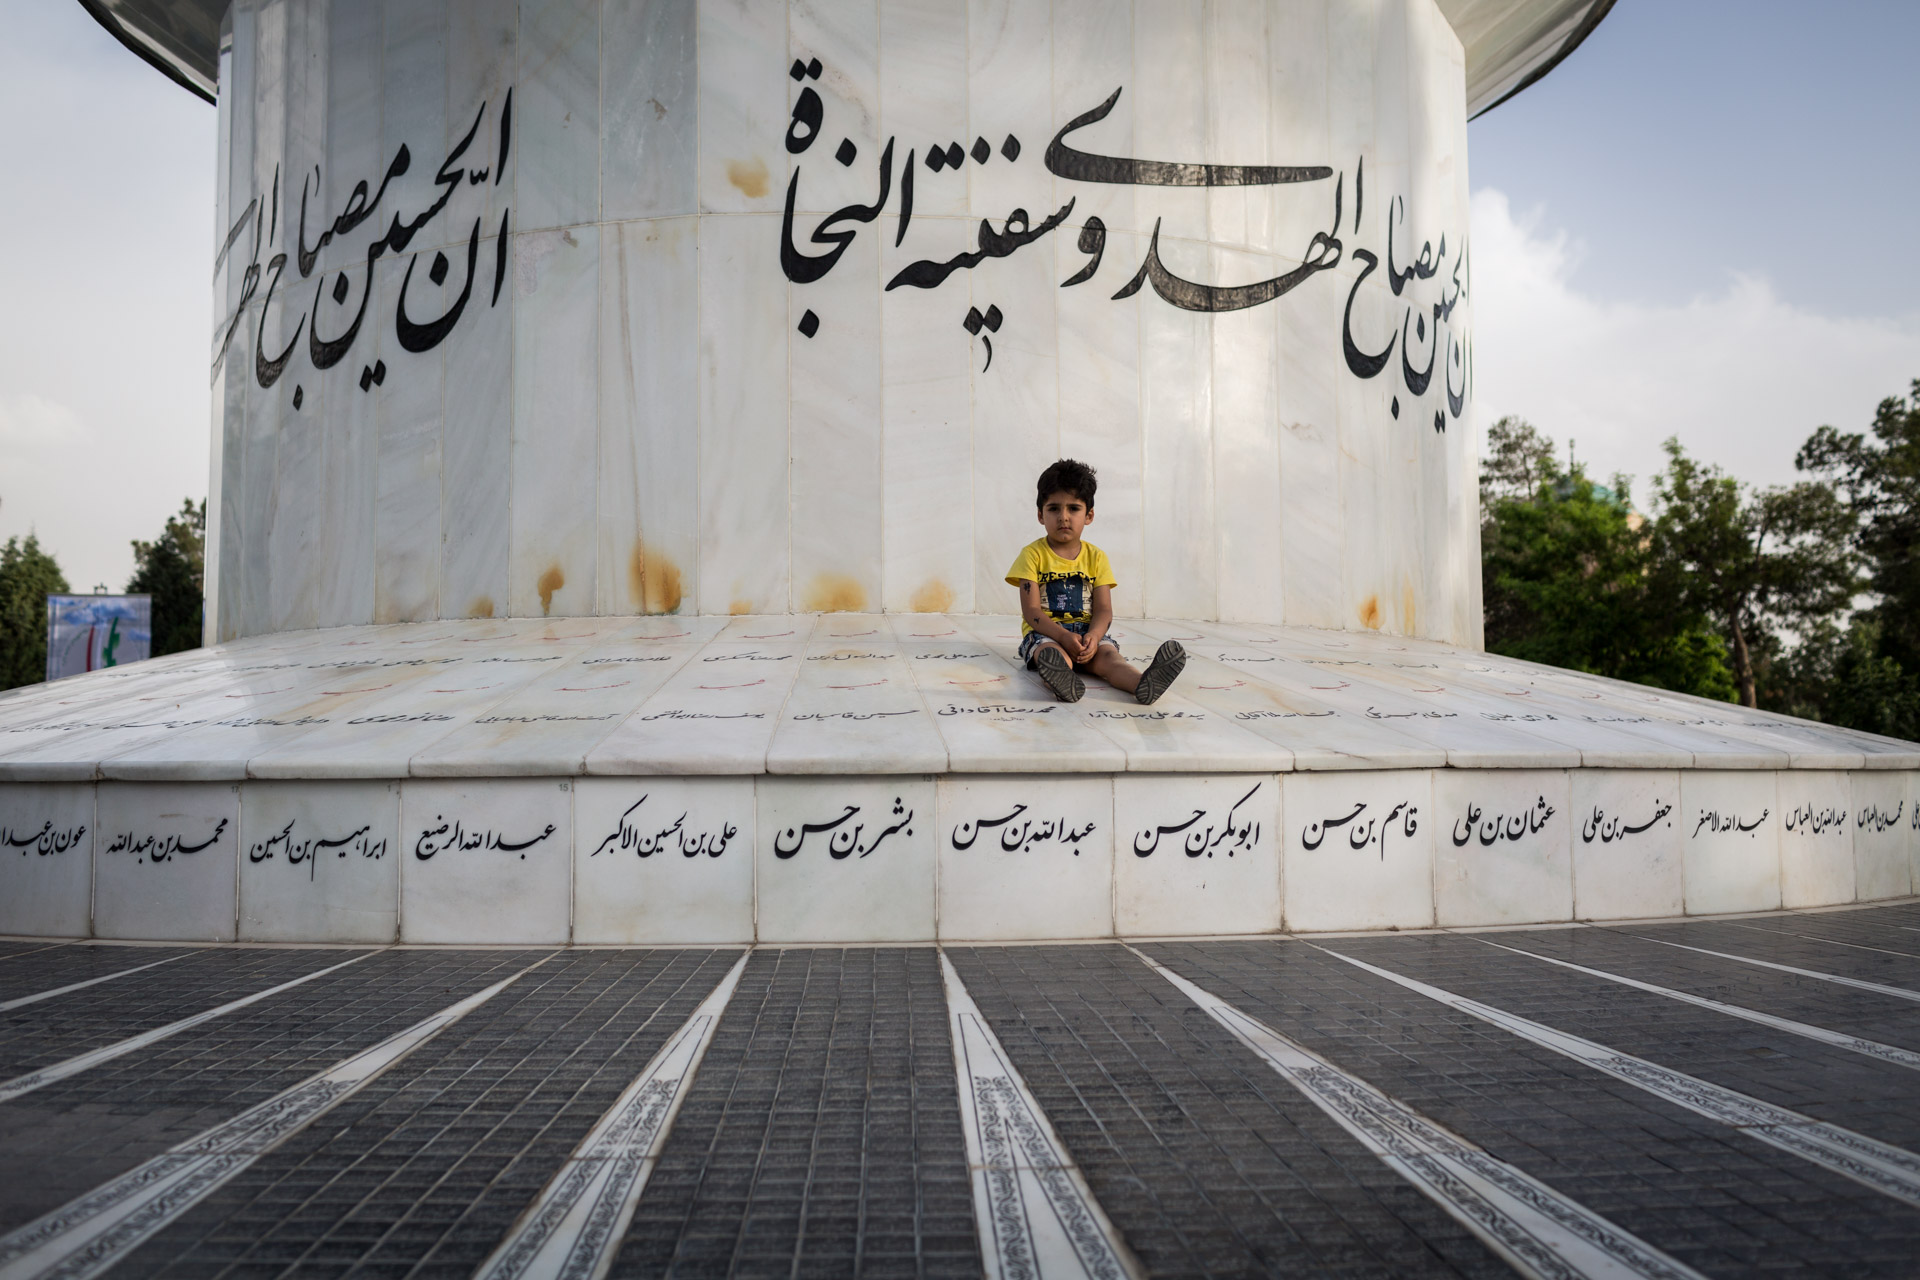 A boy sits on a memorial for members of the Iranian navy that have fallen in the war.